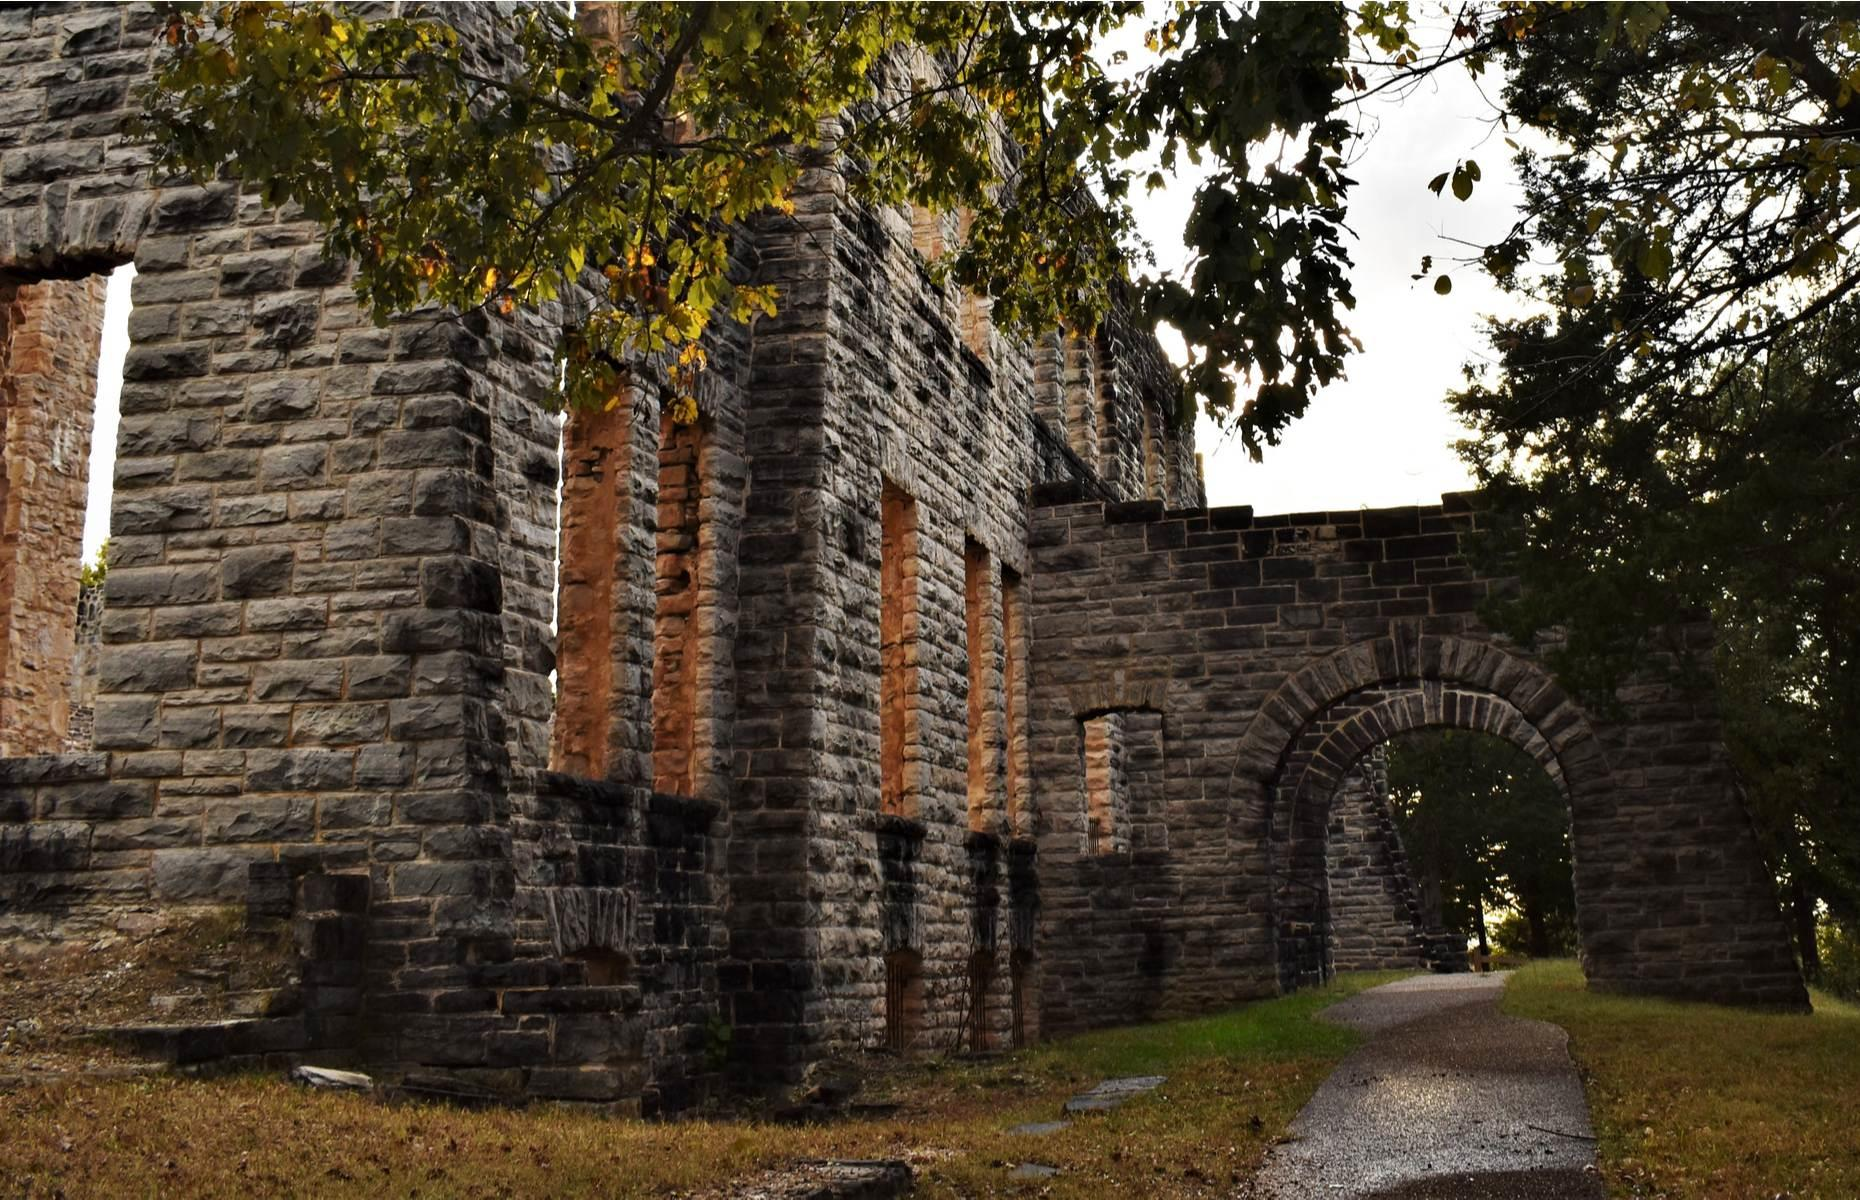 Slide 9 of 29: However, in the late 1970s, the state of Missouri bought the land and today the ghostly ruin has become a tourist attraction and a site for hiking and nature walks.Find more spectacular American castles you never knew existed here.